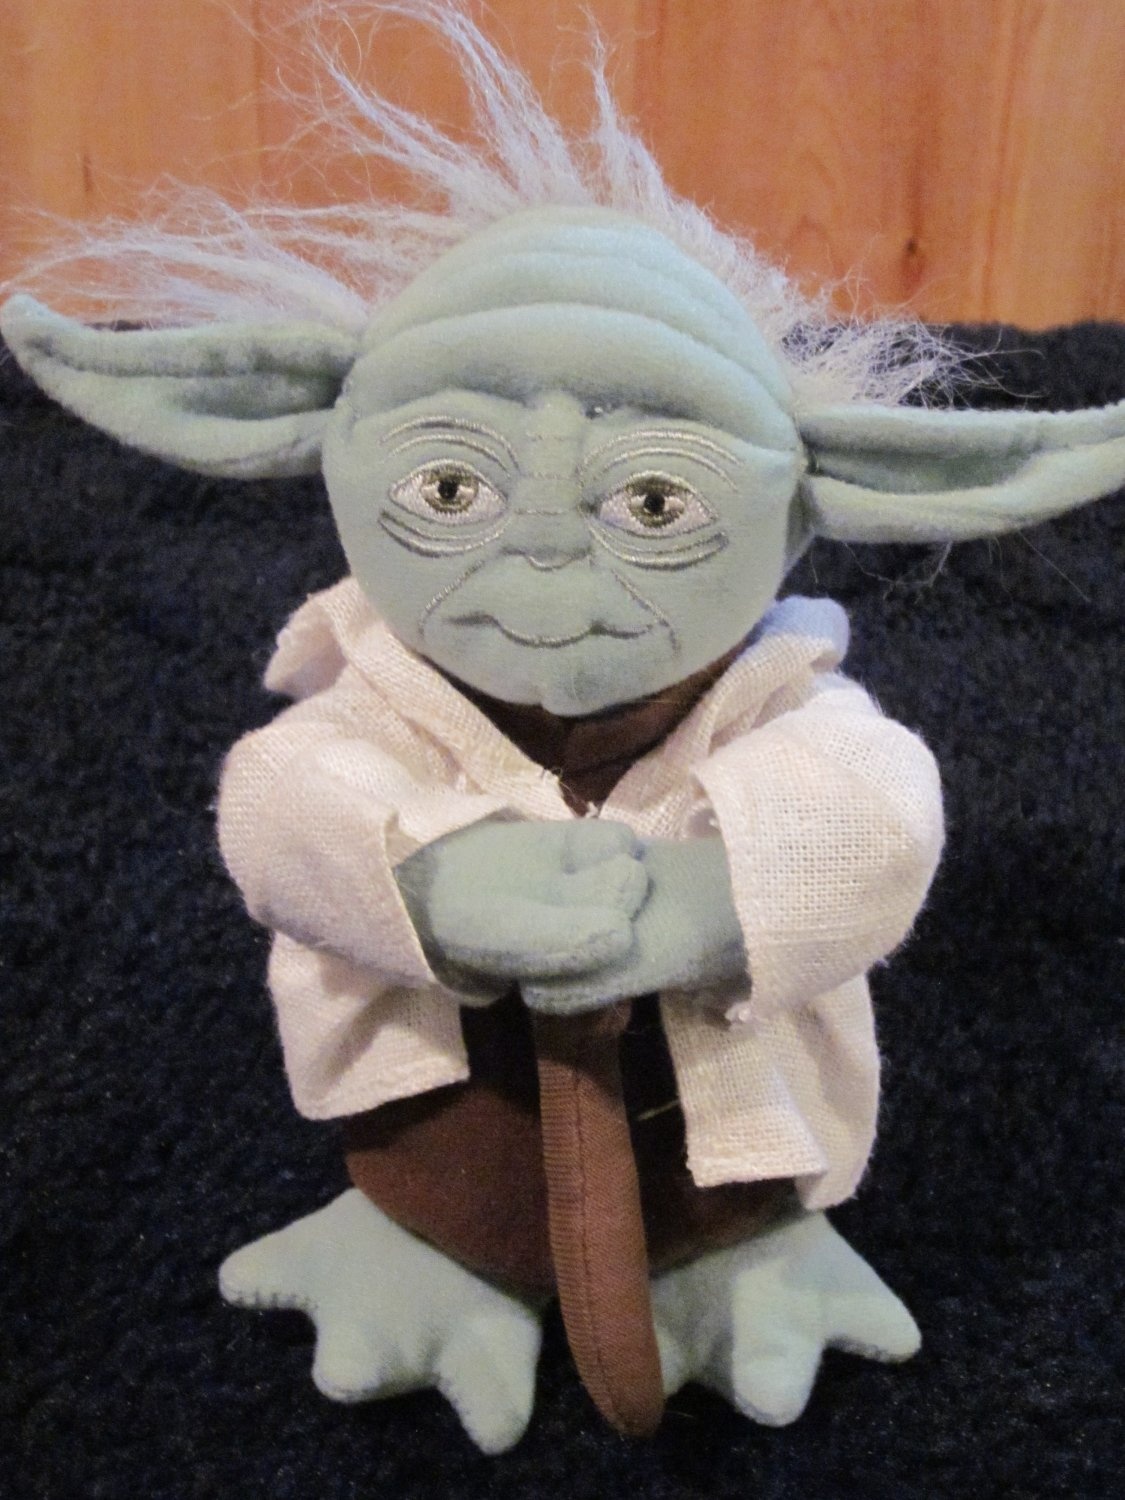 Star Wars Plush Yoda Bean filled Doll Hasbro toy